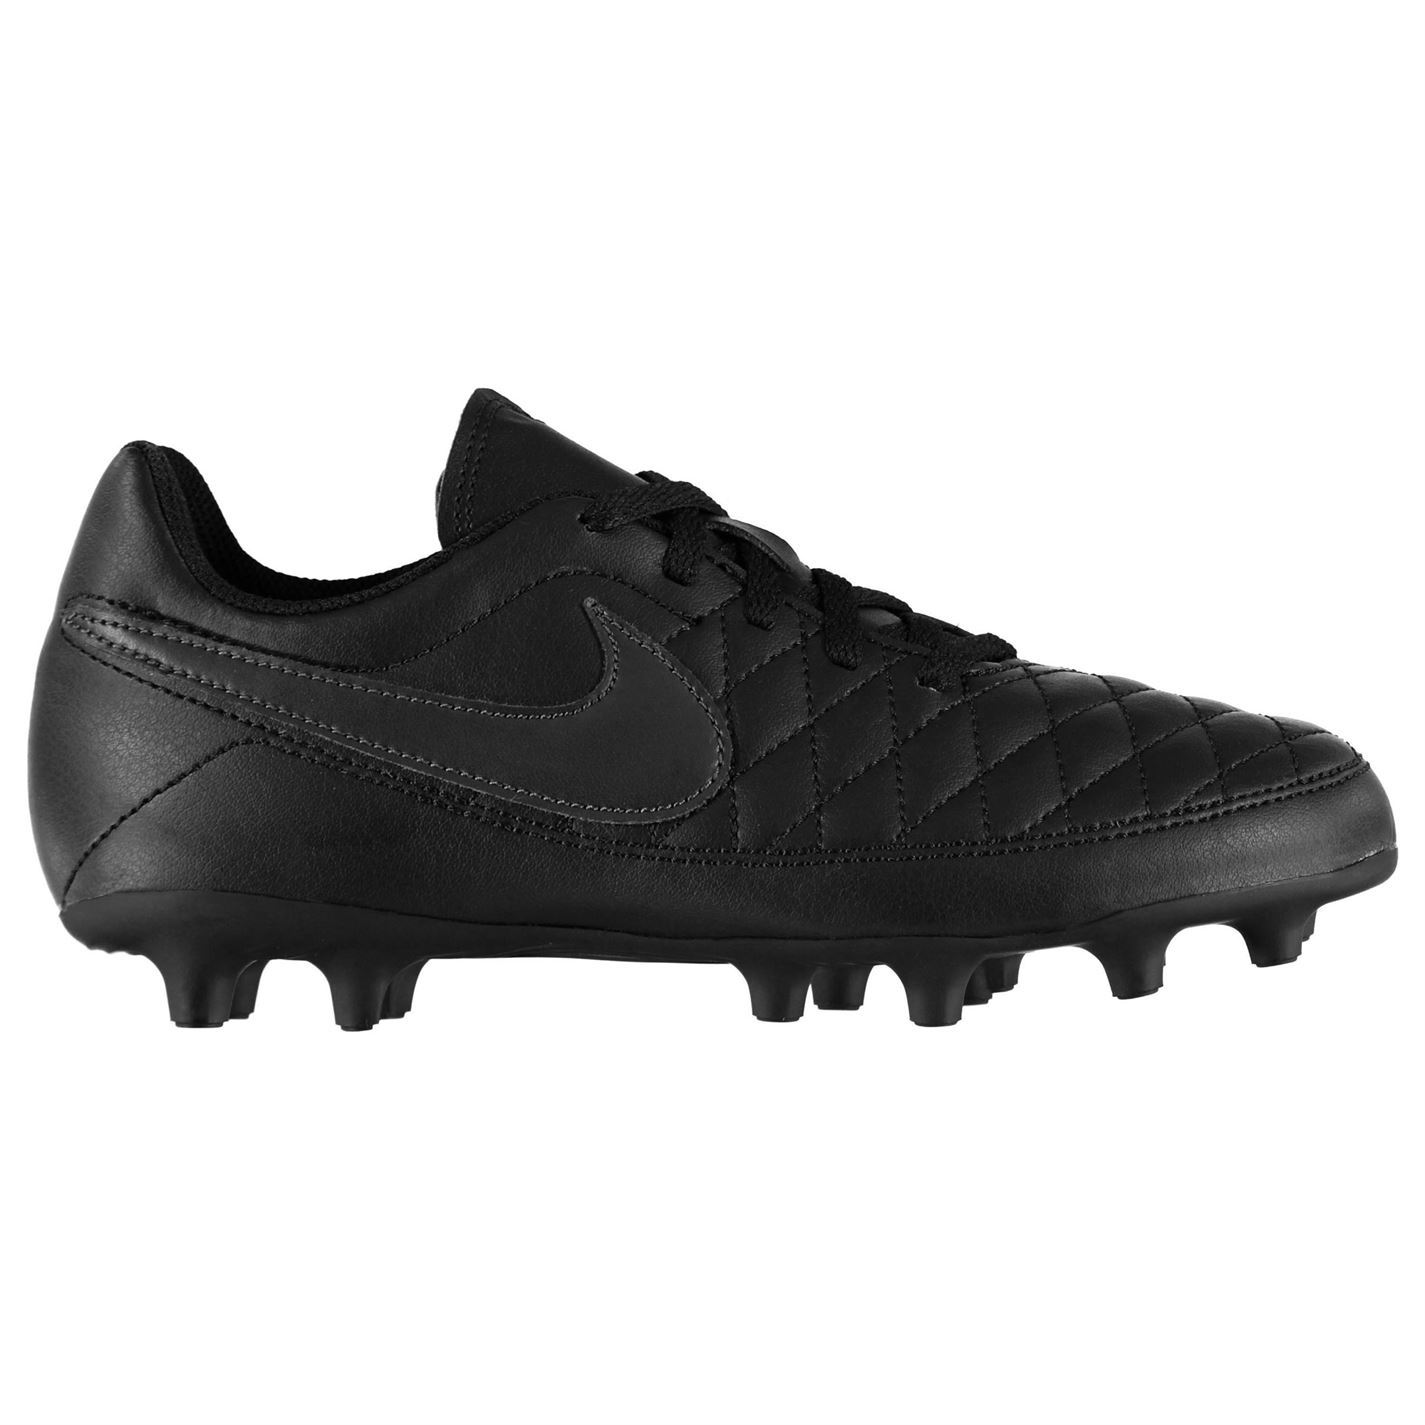 Nike-majestry-FG-Firm-Ground-Chaussures-De-Football-Enfants-Football-Chaussures-Crampons miniature 6